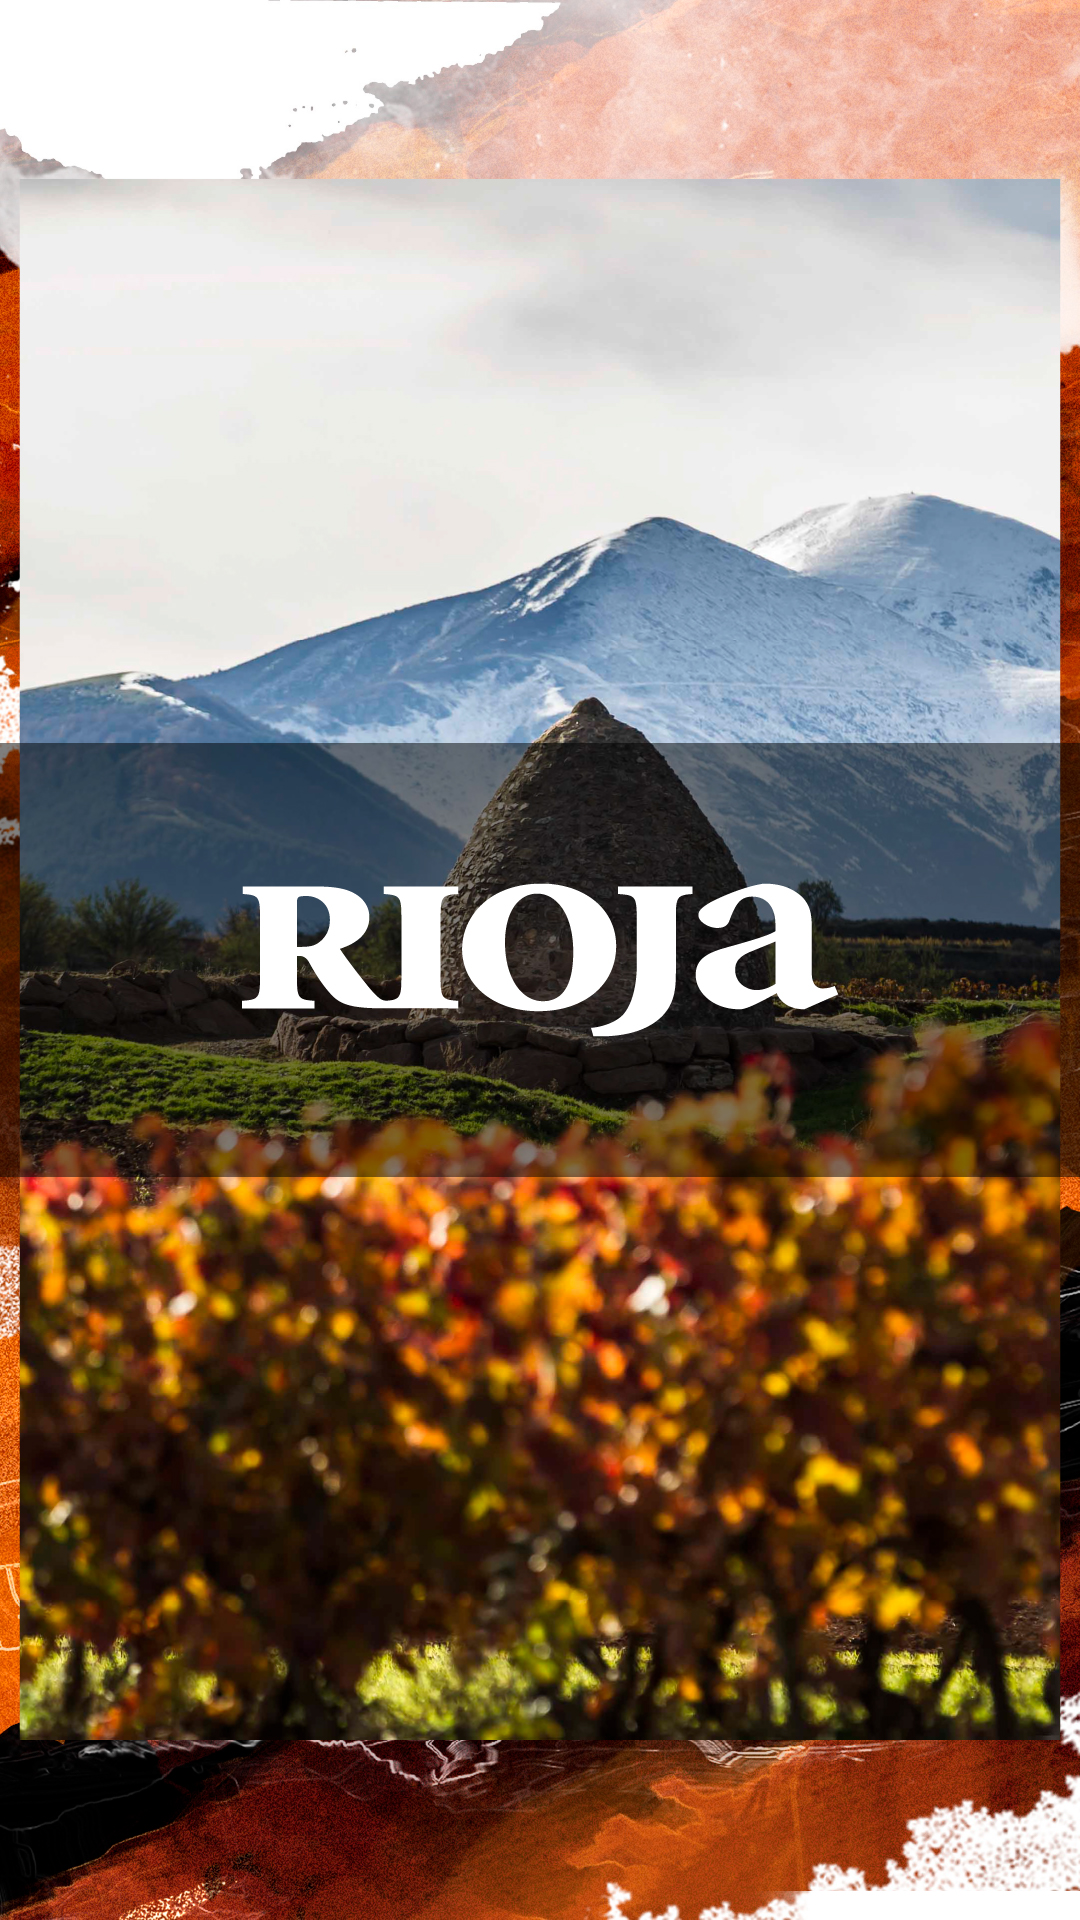 #SHOPRIOJA with WineTime